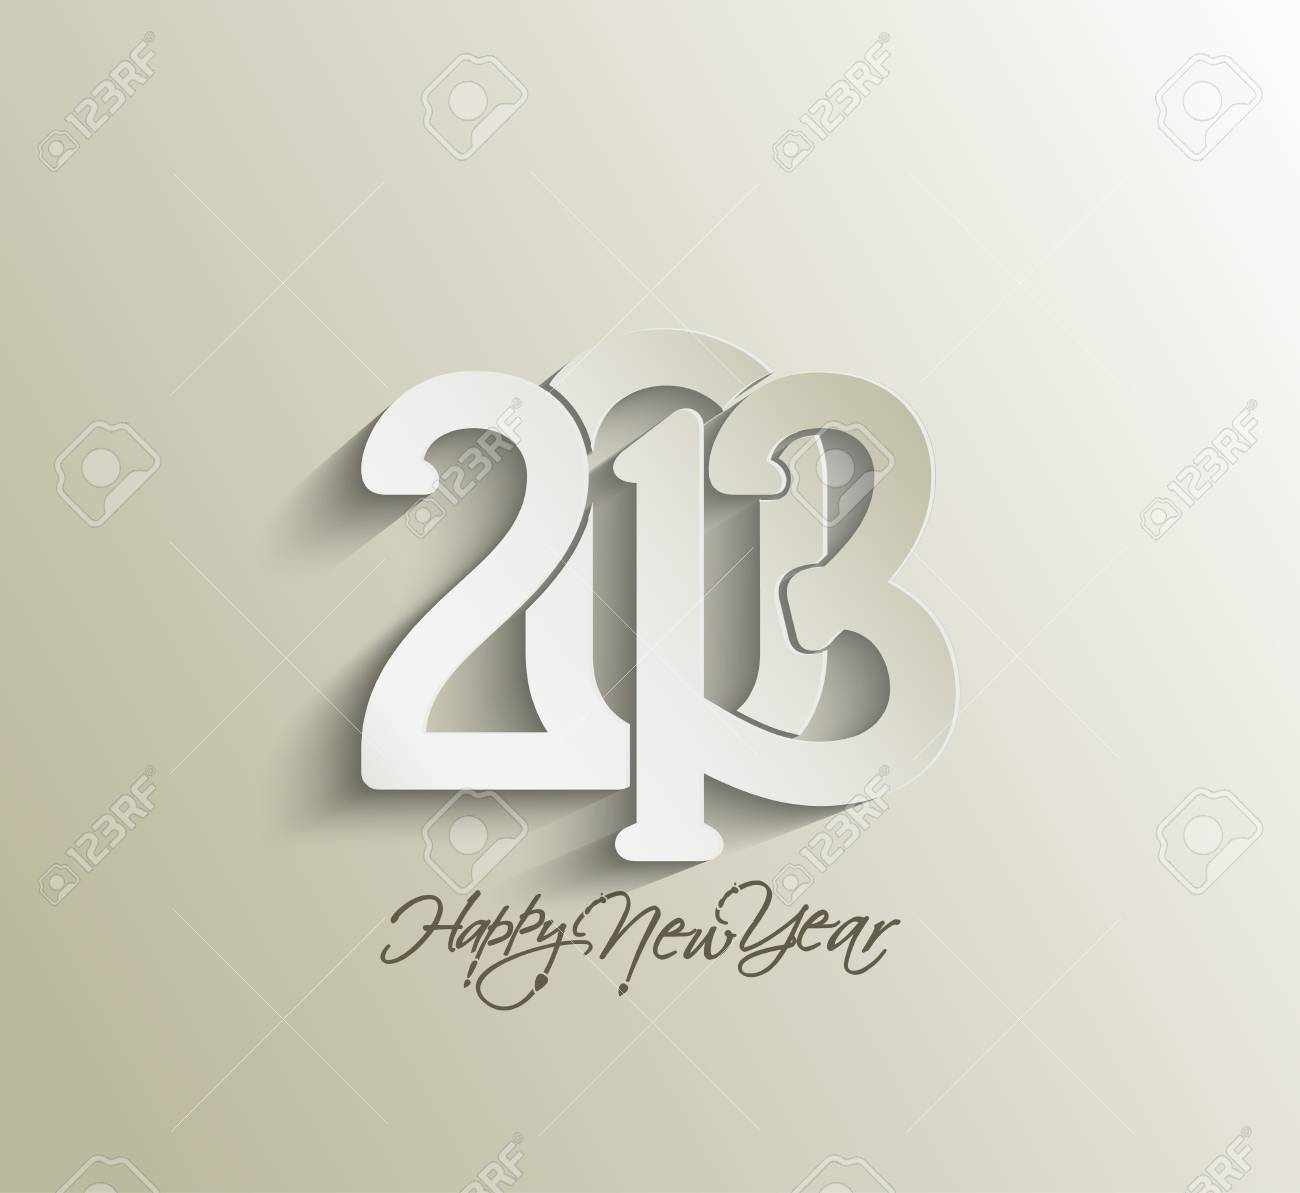 Happy new year 2013 celebration background for your posters design. Stock Vector - 16575026